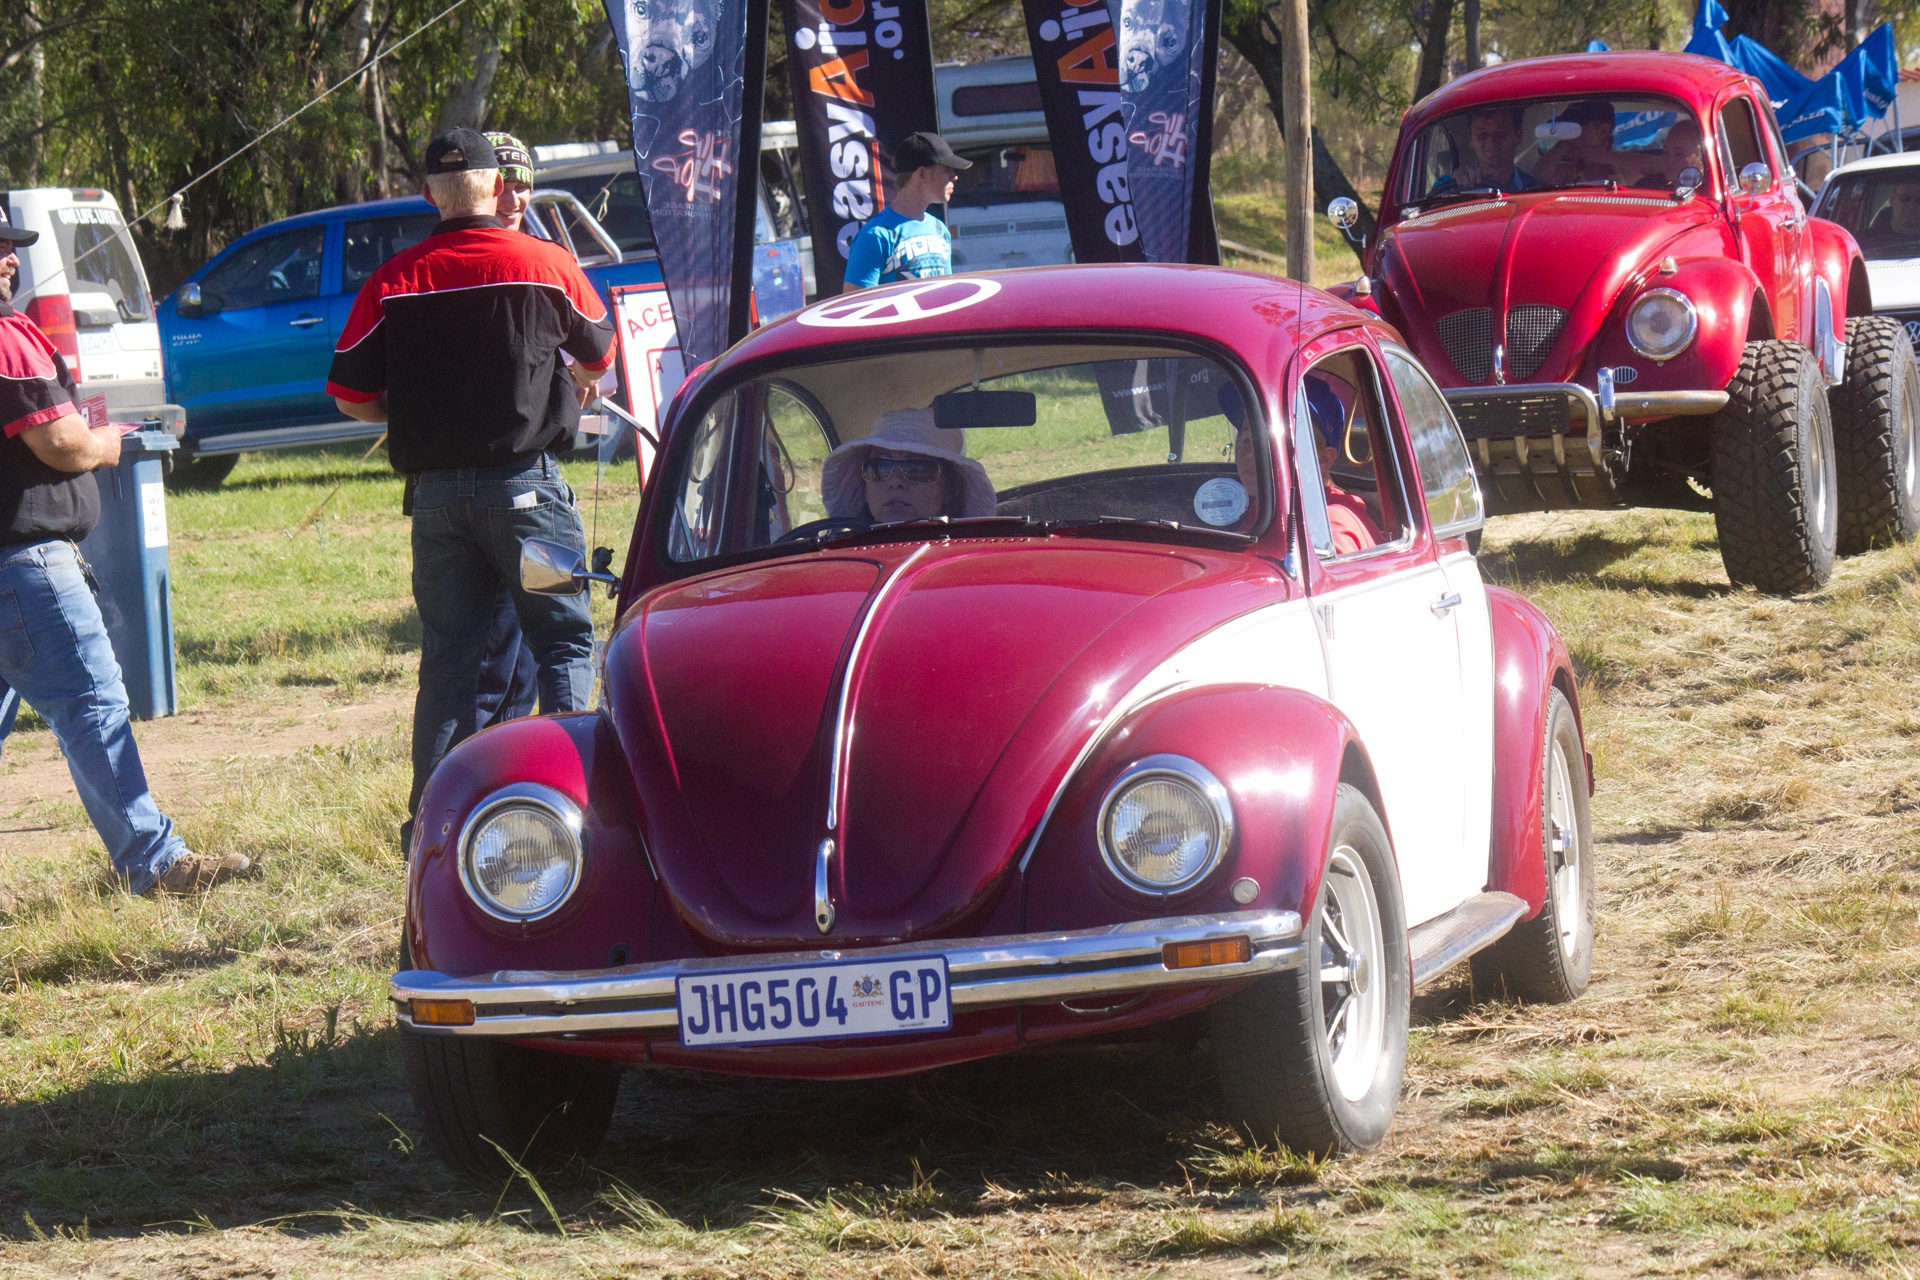 Volkswagen South Africa Festival Images And Photographs-6135